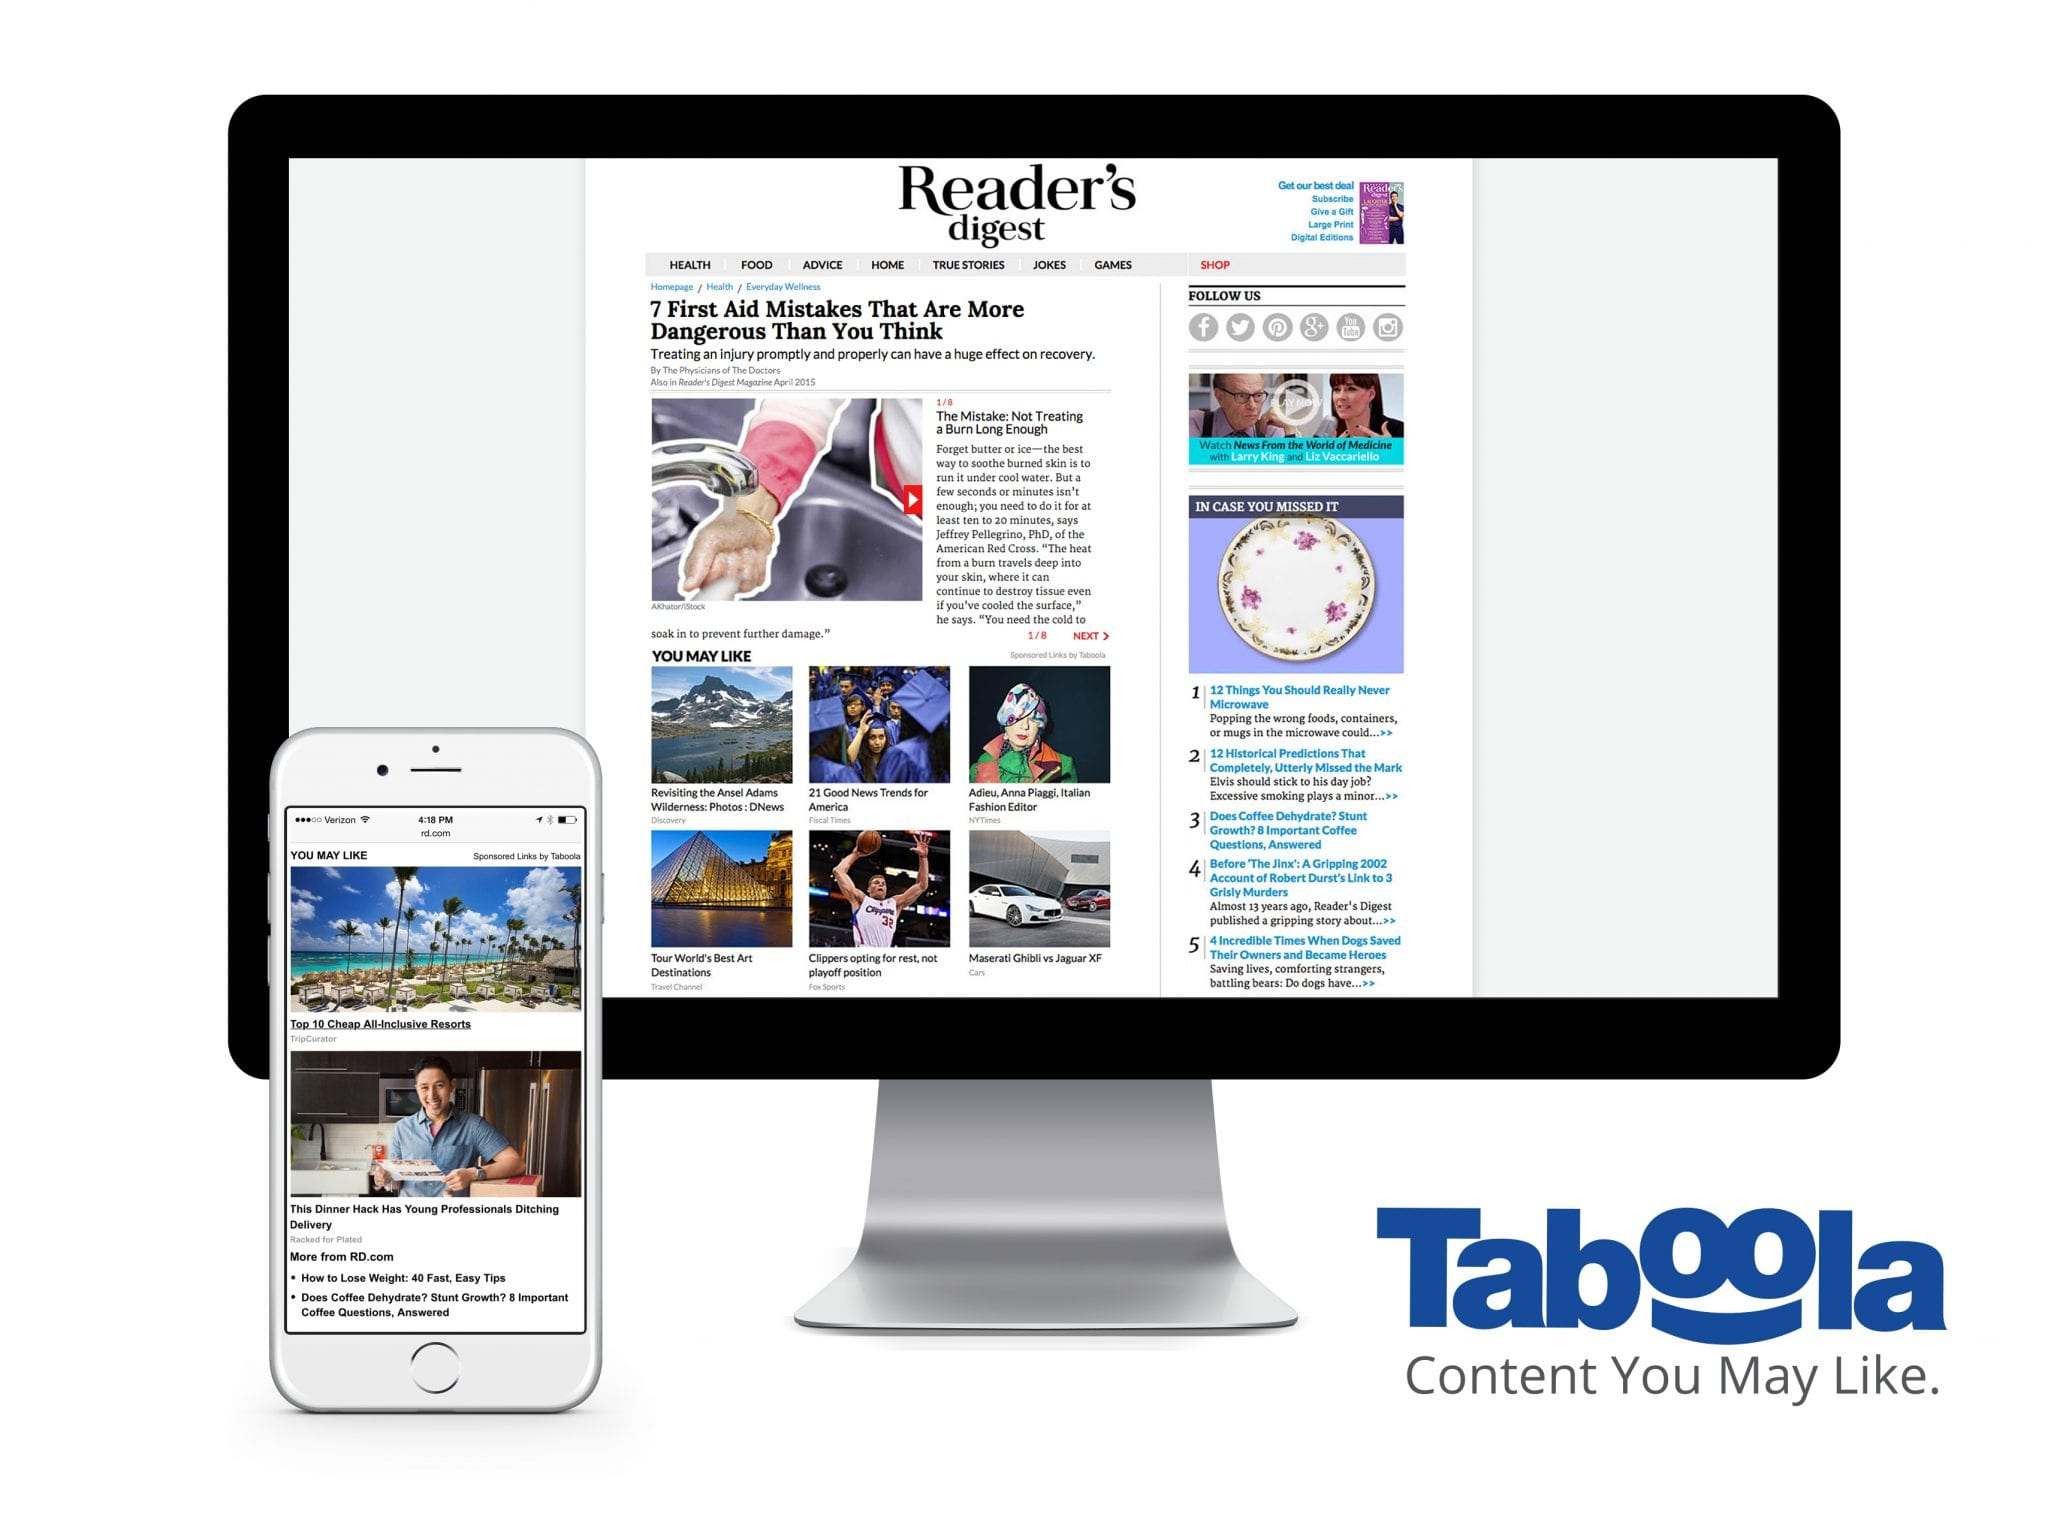 Taboola and Reader's Digest Partner For Multi-Year, Multi-Platform Deal